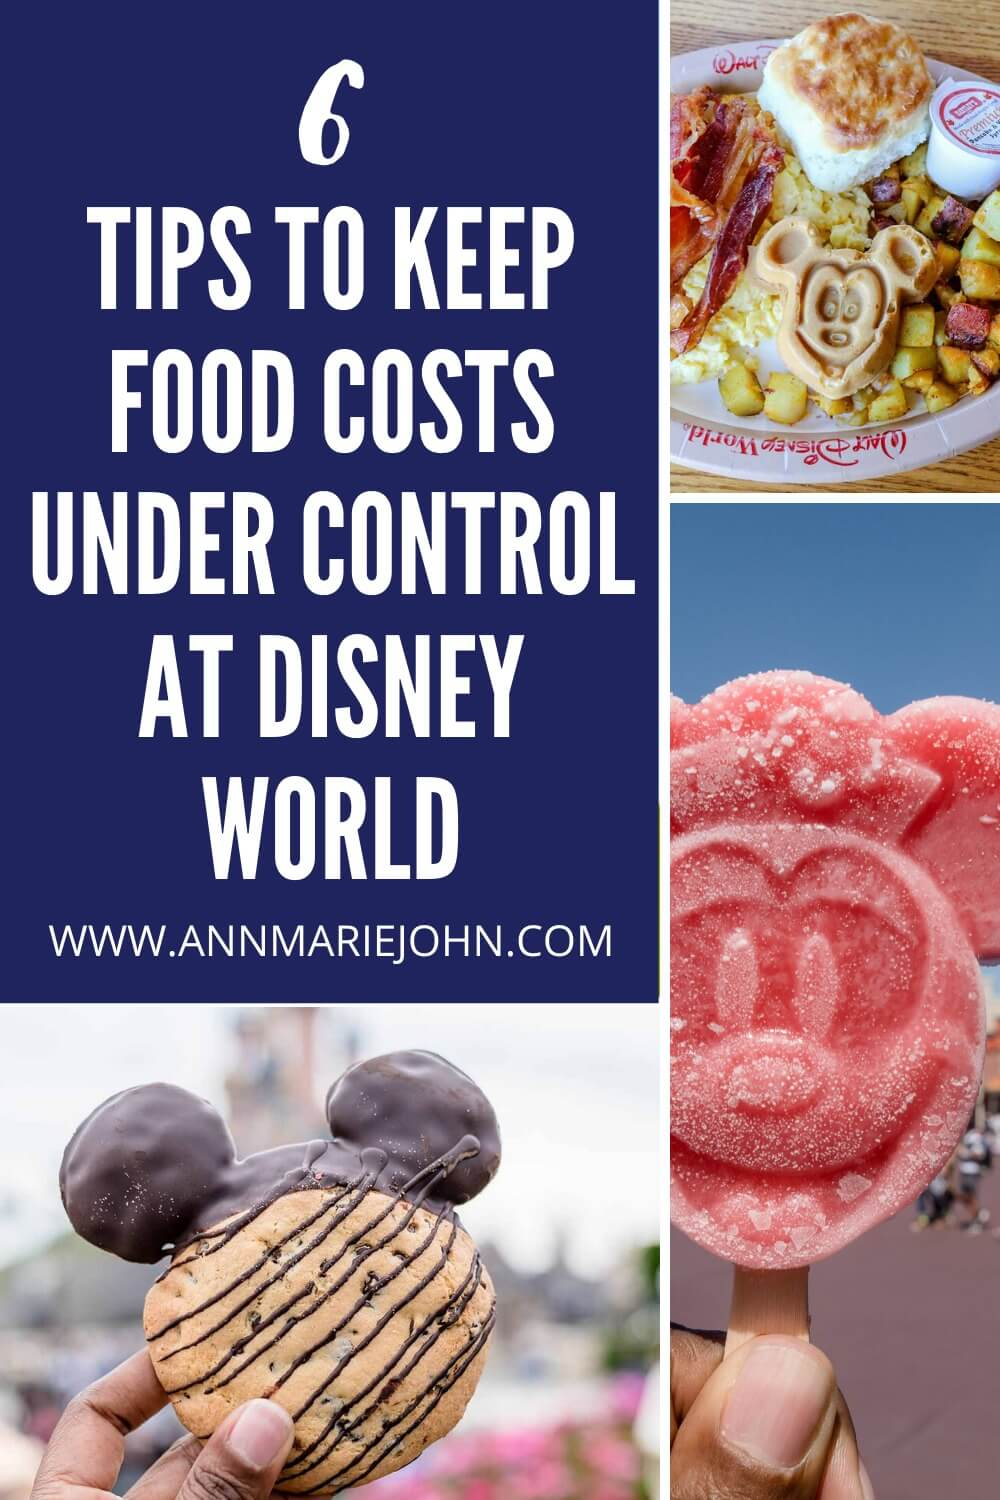 Six Tips to Keep Food Costs Under Control at Disney World